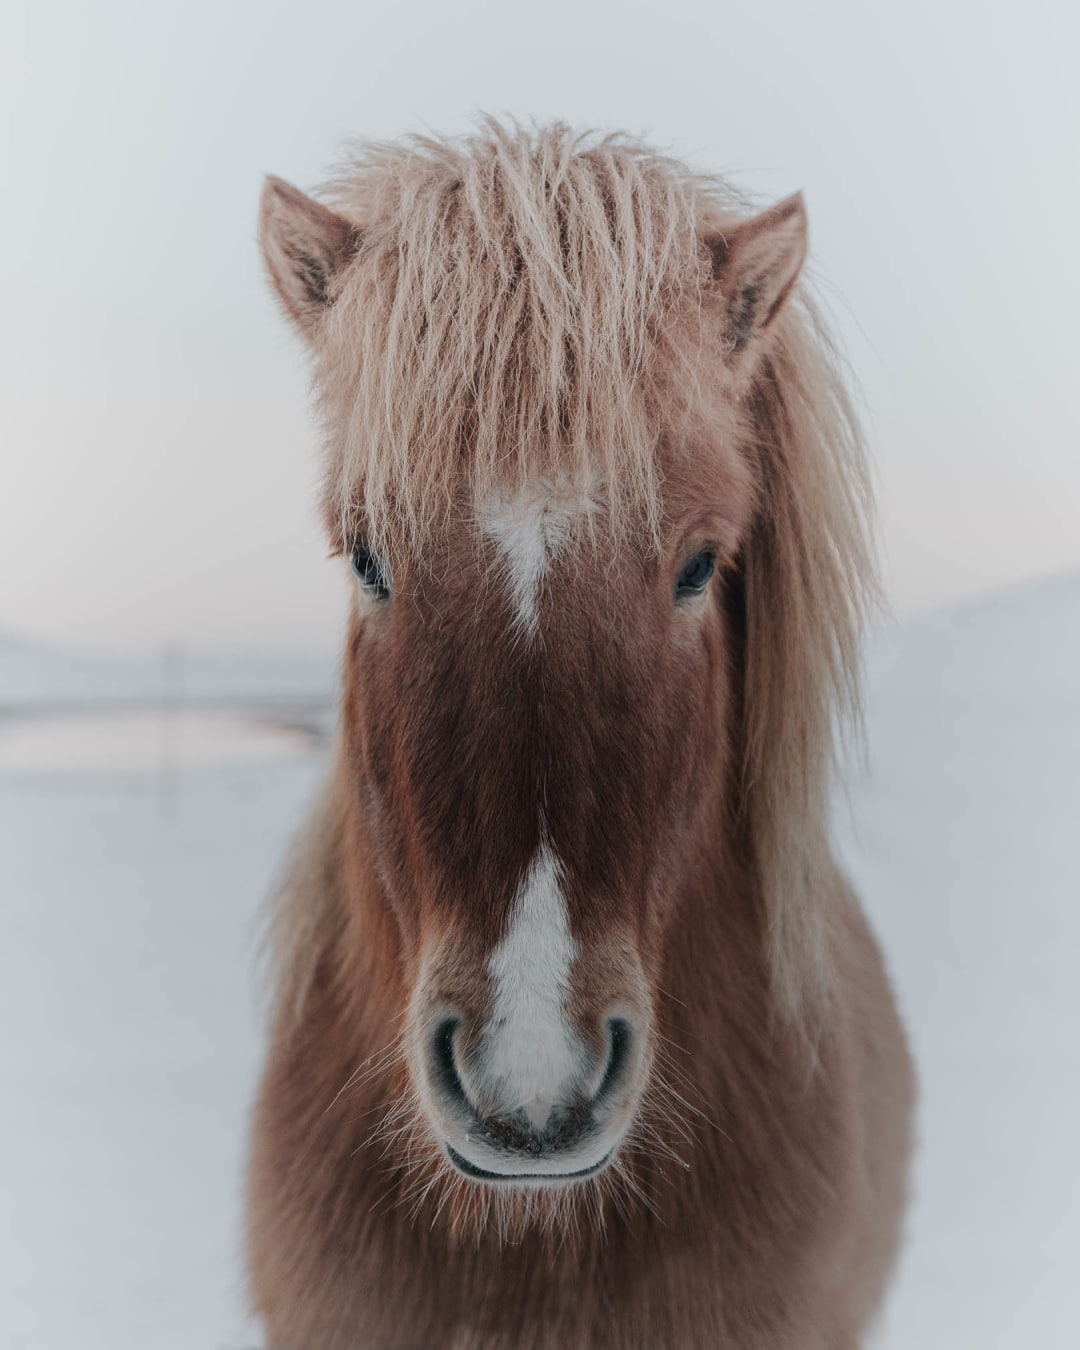 close-up face portrait of a brown Icelandic pony with blond hair stood in the snow landscape photography of Iceland